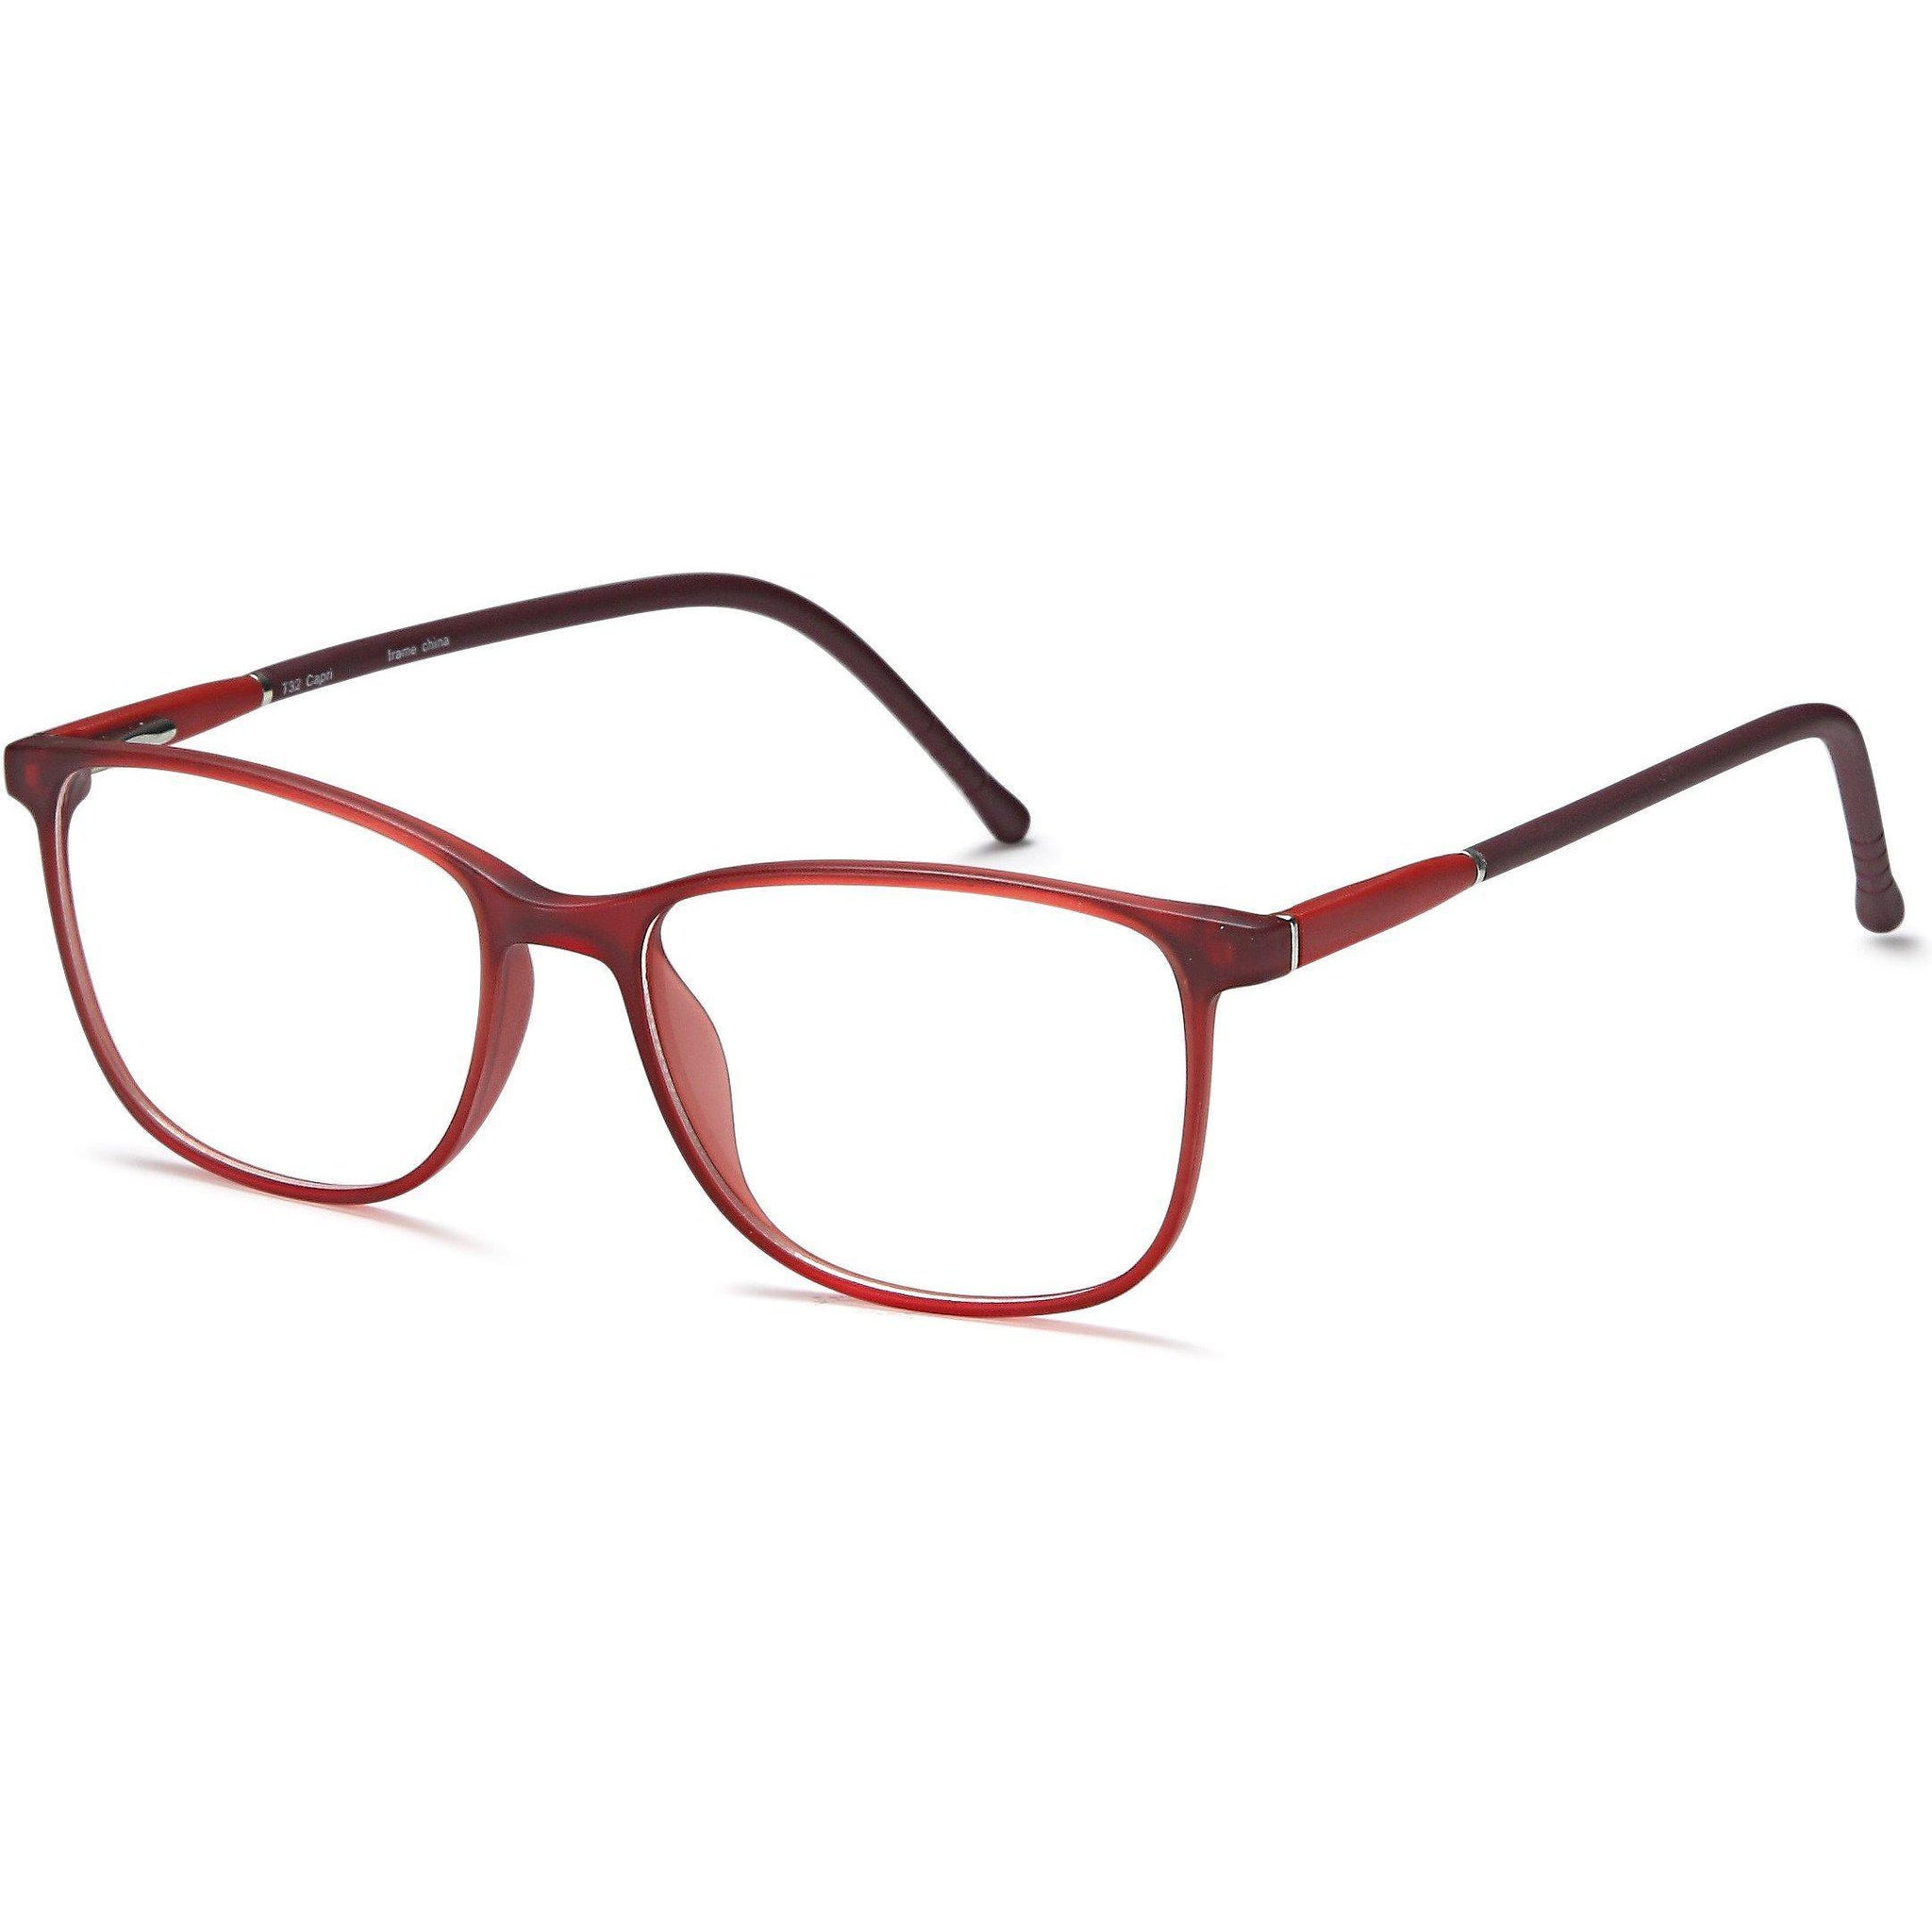 OnTrend Prescription Glasses T 32 Eyeglasses Frames